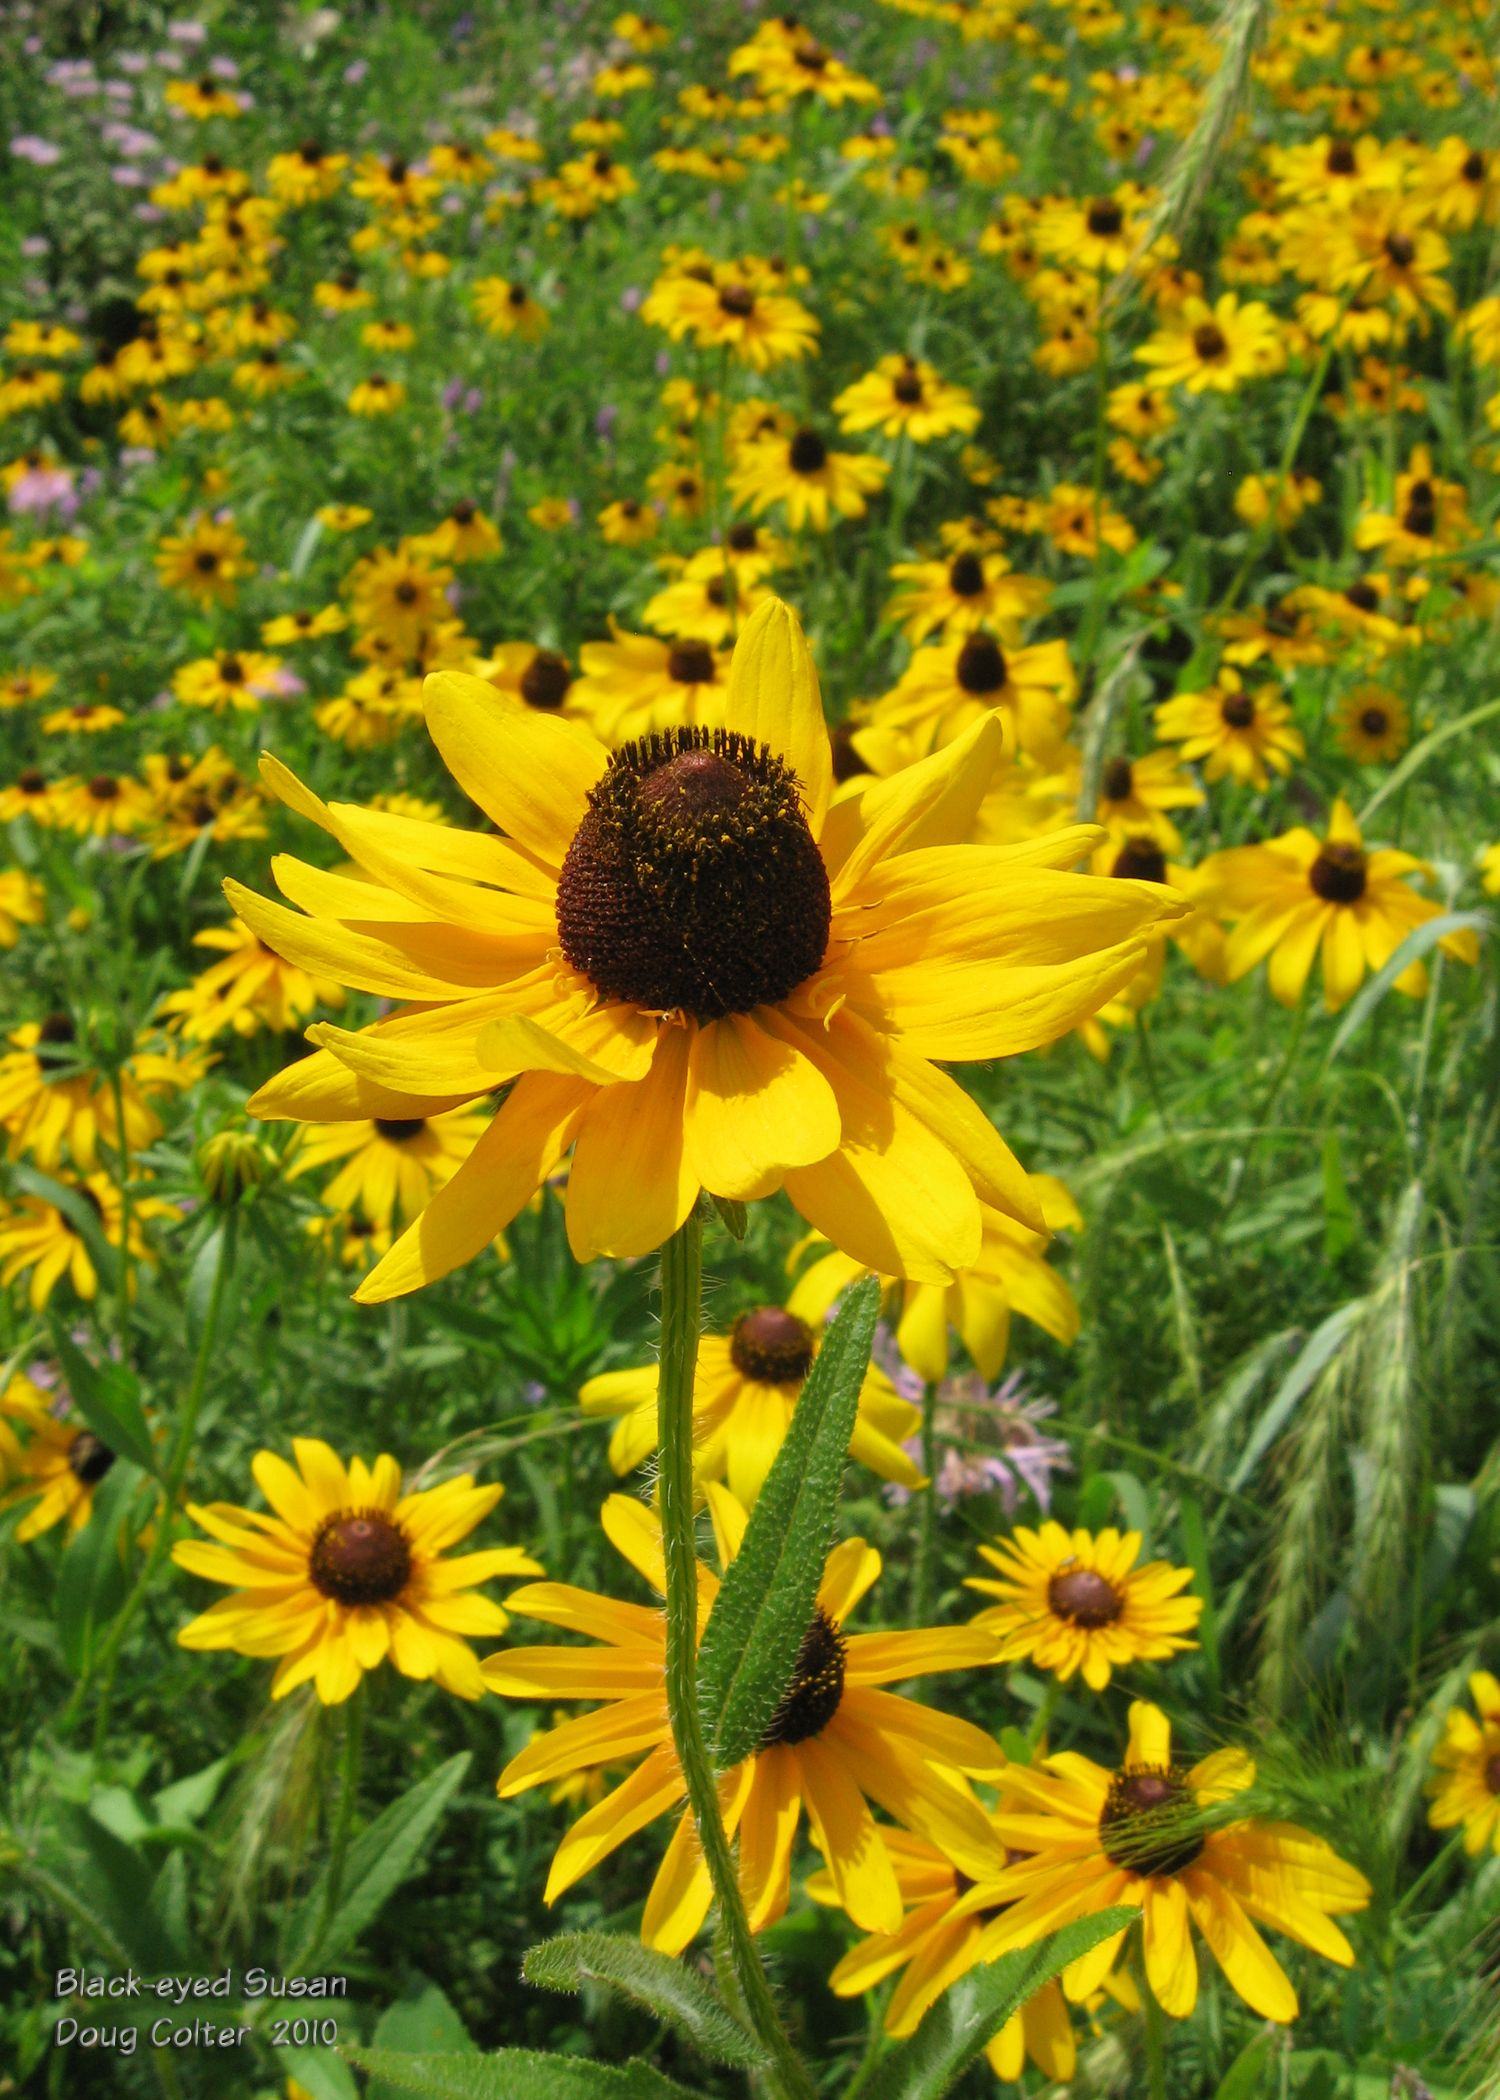 Black-eyed Susan (Rudbeckia hirta) •Family: Aster (Asteraceae)  •Habitat: fields, open woods, roadsides •Height: 1-3 feet •Flower size: 2-3 inches across •Flower color: yellow and dark brown •Flowering time: June to October  • Photo by Doug Colter